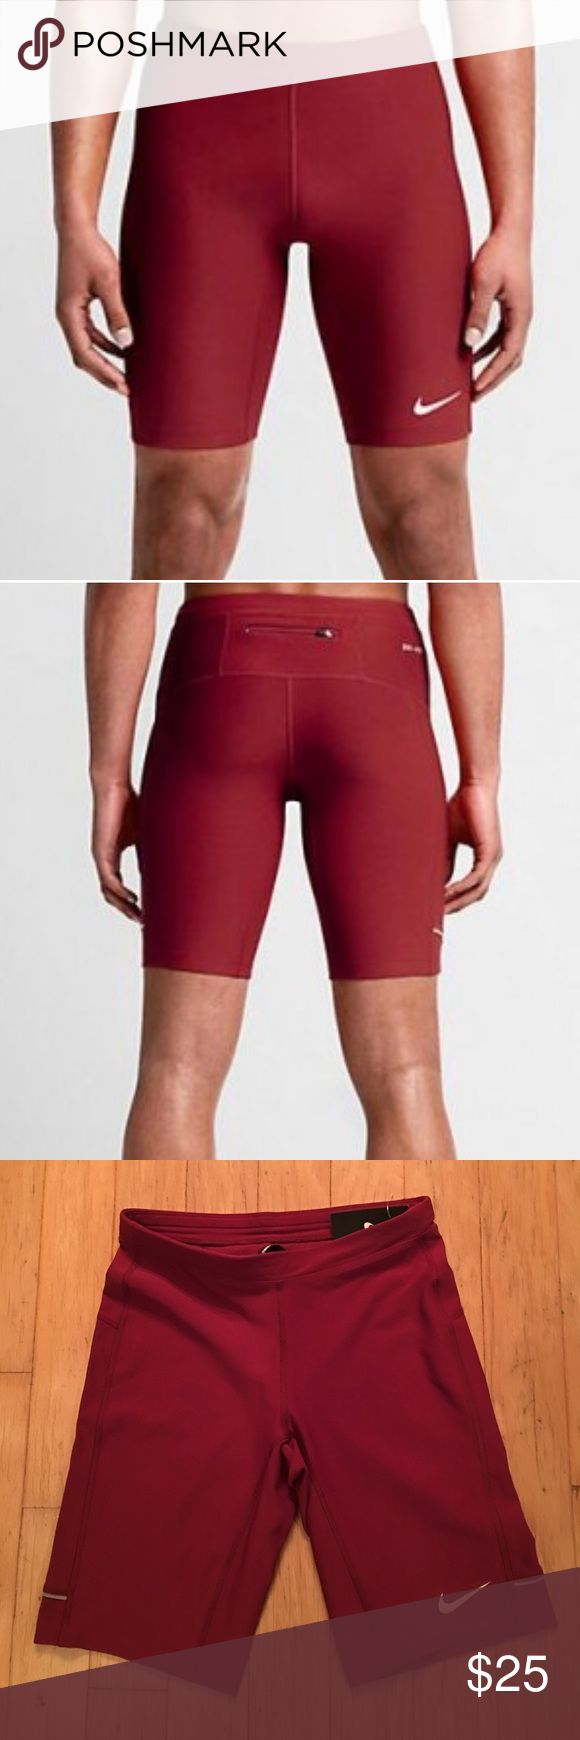 Nike Filament Men's Running Shorts (Cardinal) Provide a comfortable, locked-in fit during your workout with sweat-wicking stretch fabric. Stretch waist with interior drawcord for a snug fit. Zip pocket at back securely stores small items. Nike Shorts Athletic